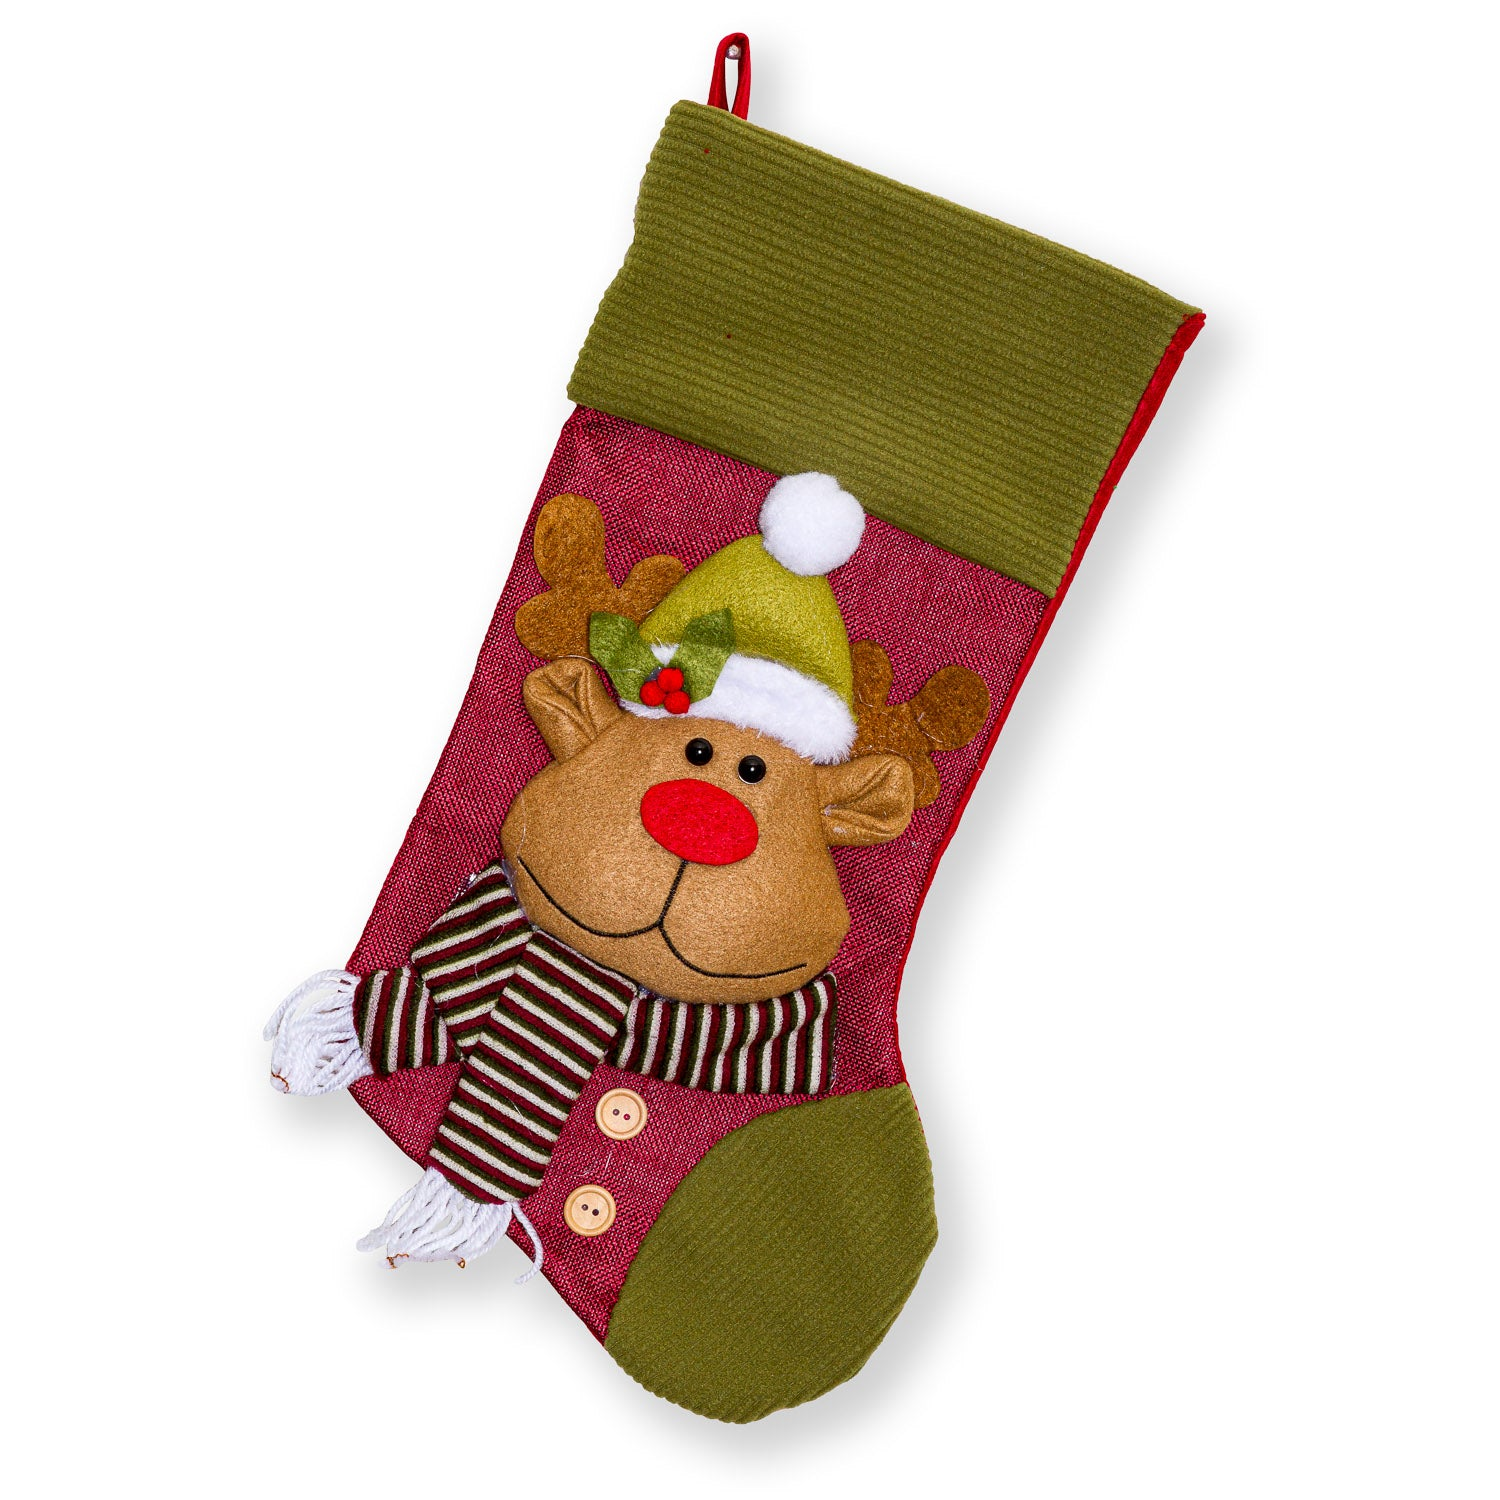 "Large Fleece Trim Classic 3D Christmas Stockings - 18"" Santa Toy Stockings"